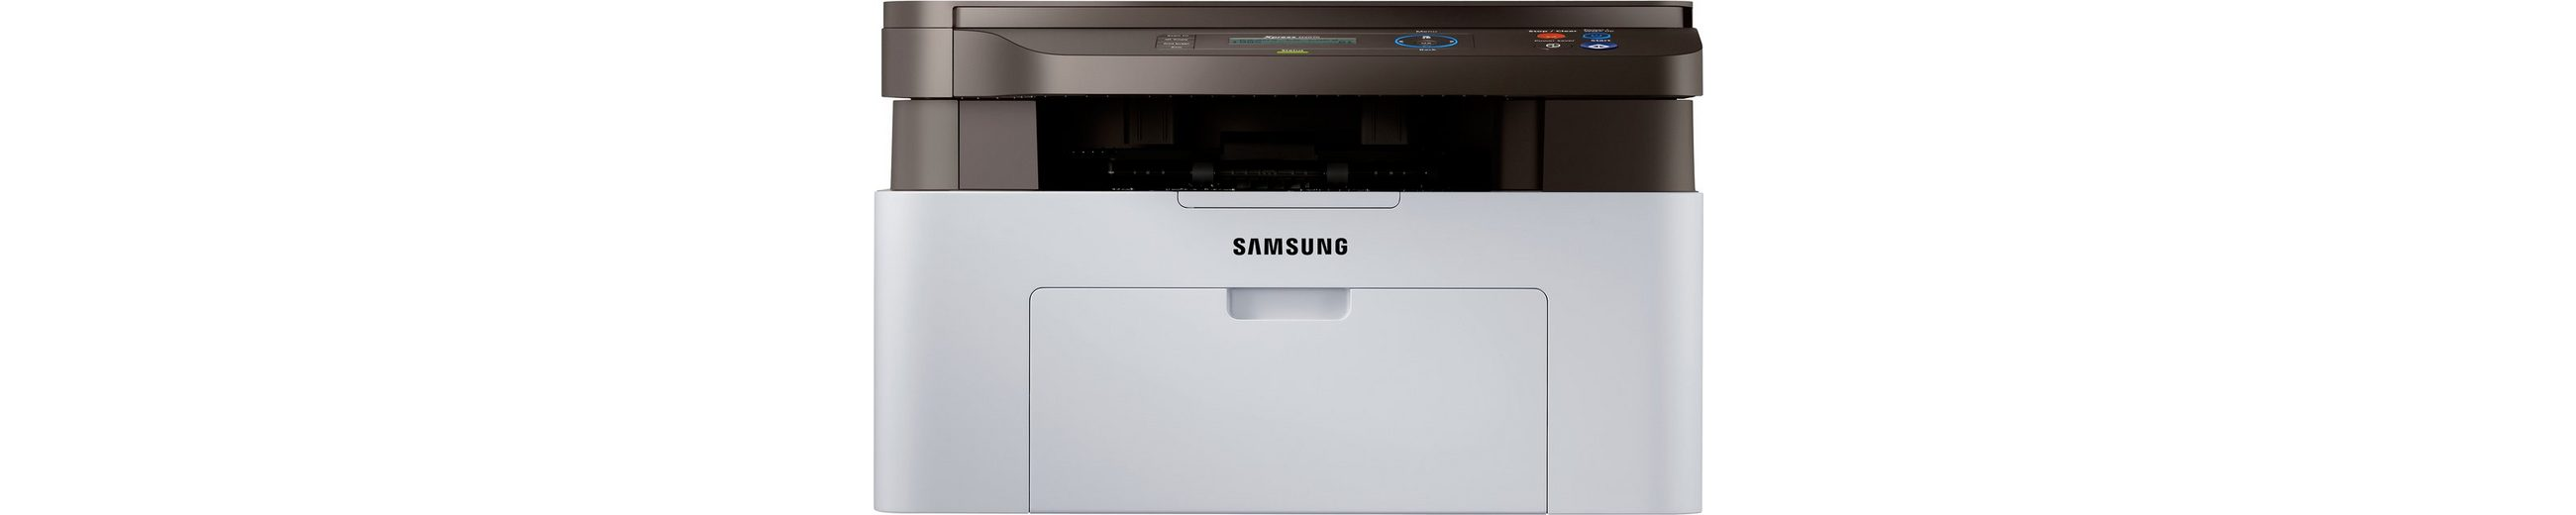 Samsung Xpress M2070 Multifunktionsdrucker